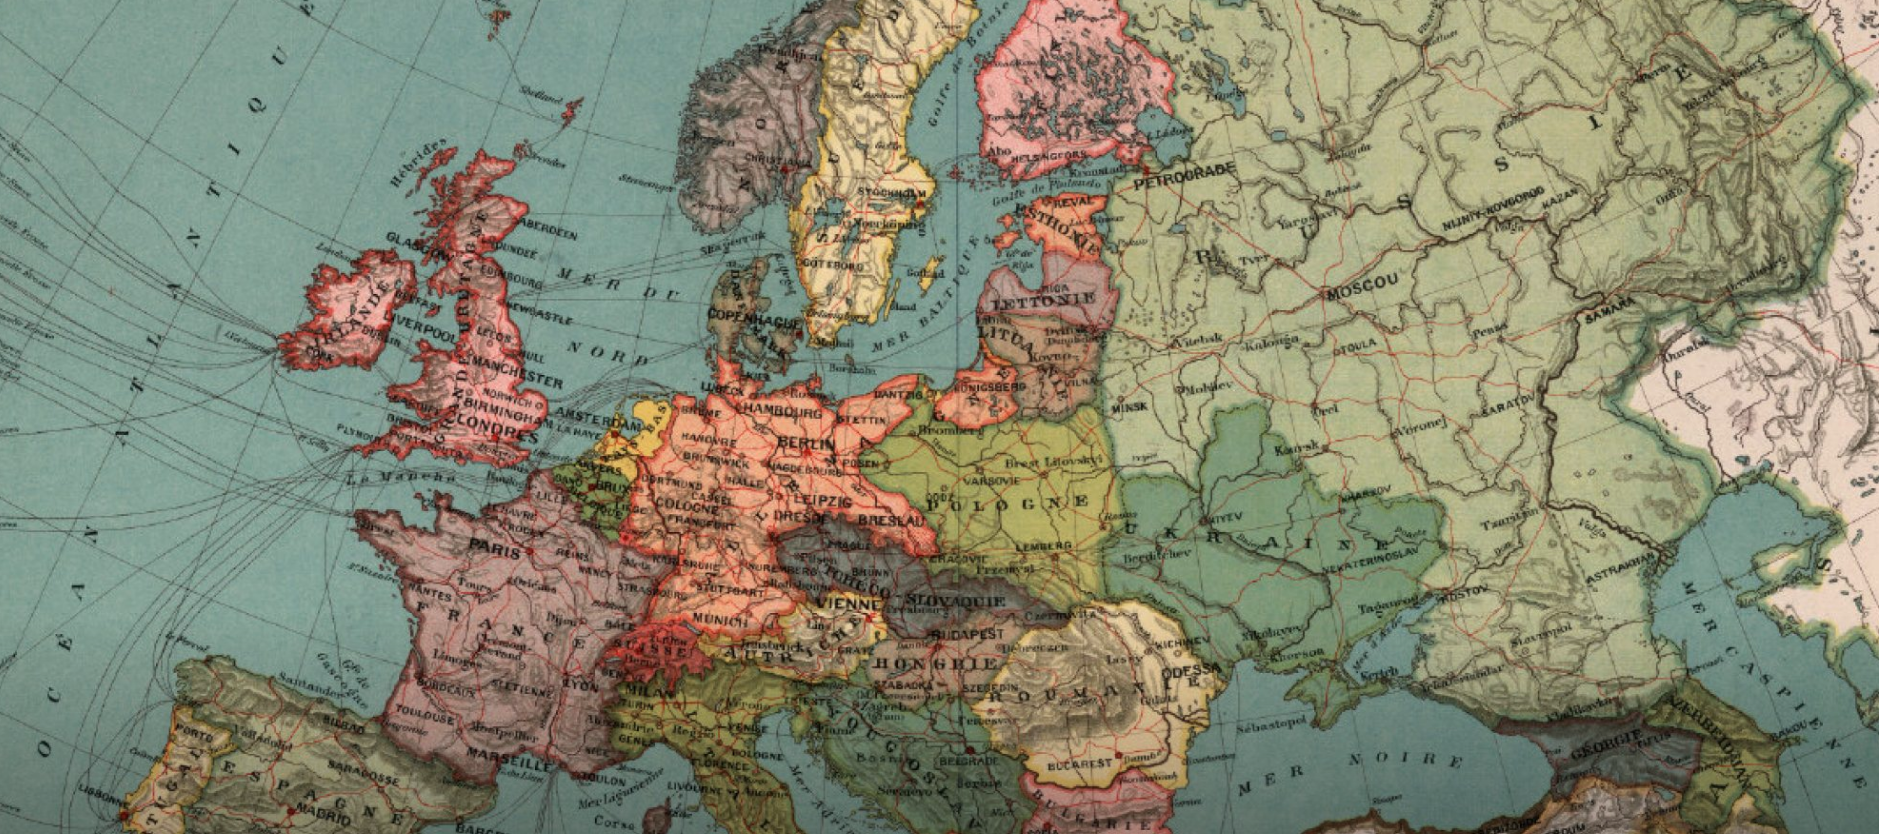 One Hundred Years On: a New Central Europe from the Ruins? | Europeum